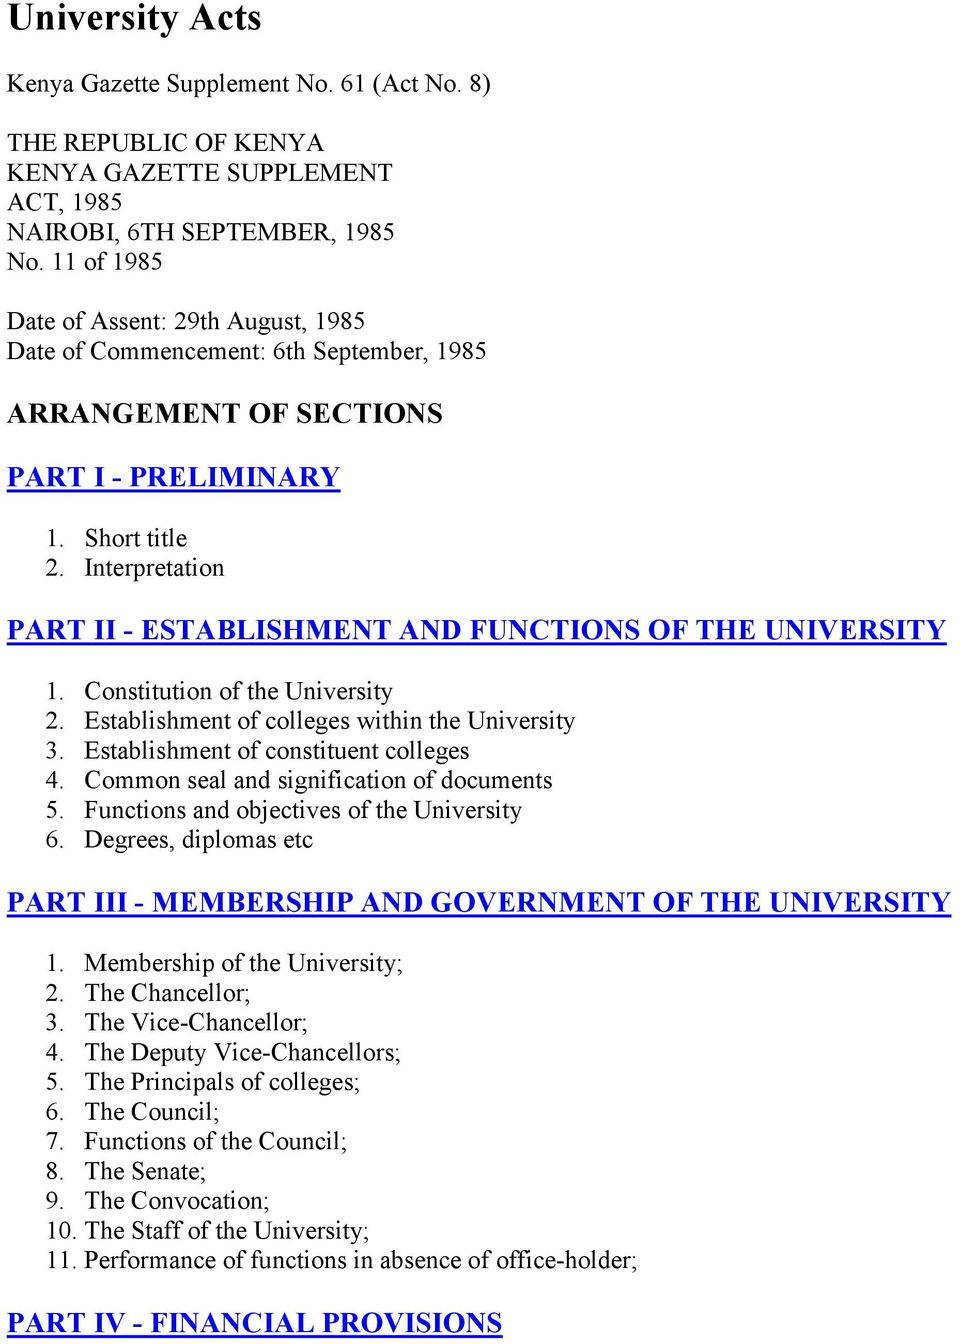 Interpretation PART II - ESTABLISHMENT AND FUNCTIONS OF THE UNIVERSITY 1. Constitution of the University 2. Establishment of colleges within the University 3. Establishment of constituent colleges 4.